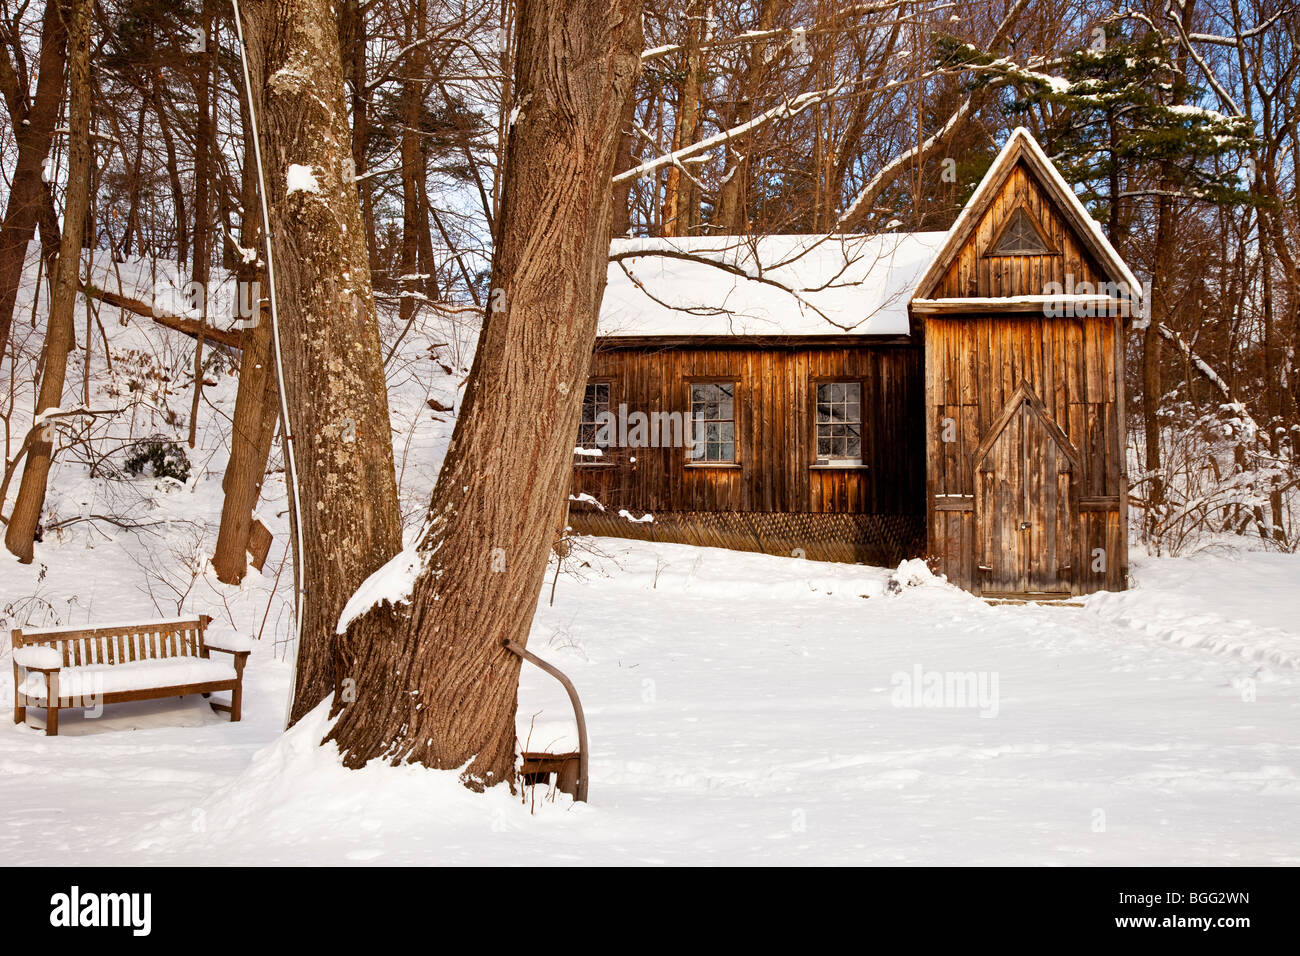 Winter at the Concord School of Philosophy - Concord Massachusetts USA - Stock Image